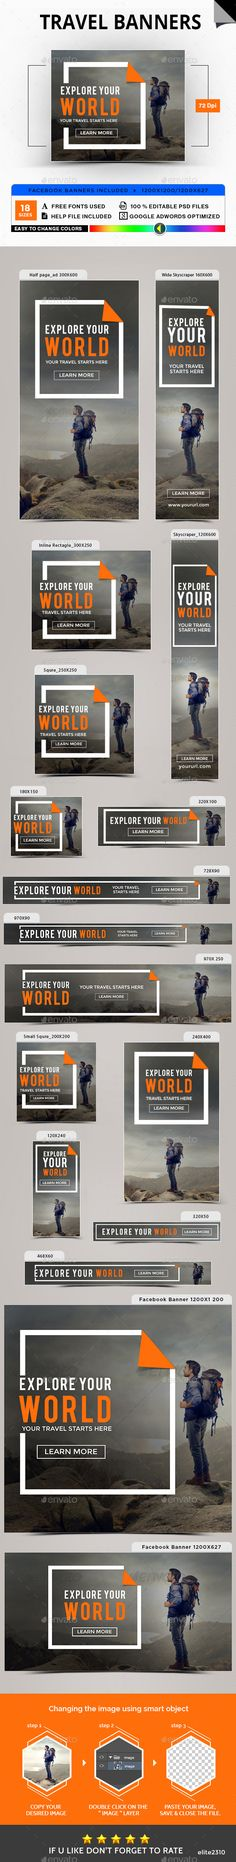 Travel Banners - #Banners & Ads #Web Elements Download here: https://graphicriver.net/item/travel-banners/20056261?ref=alena994